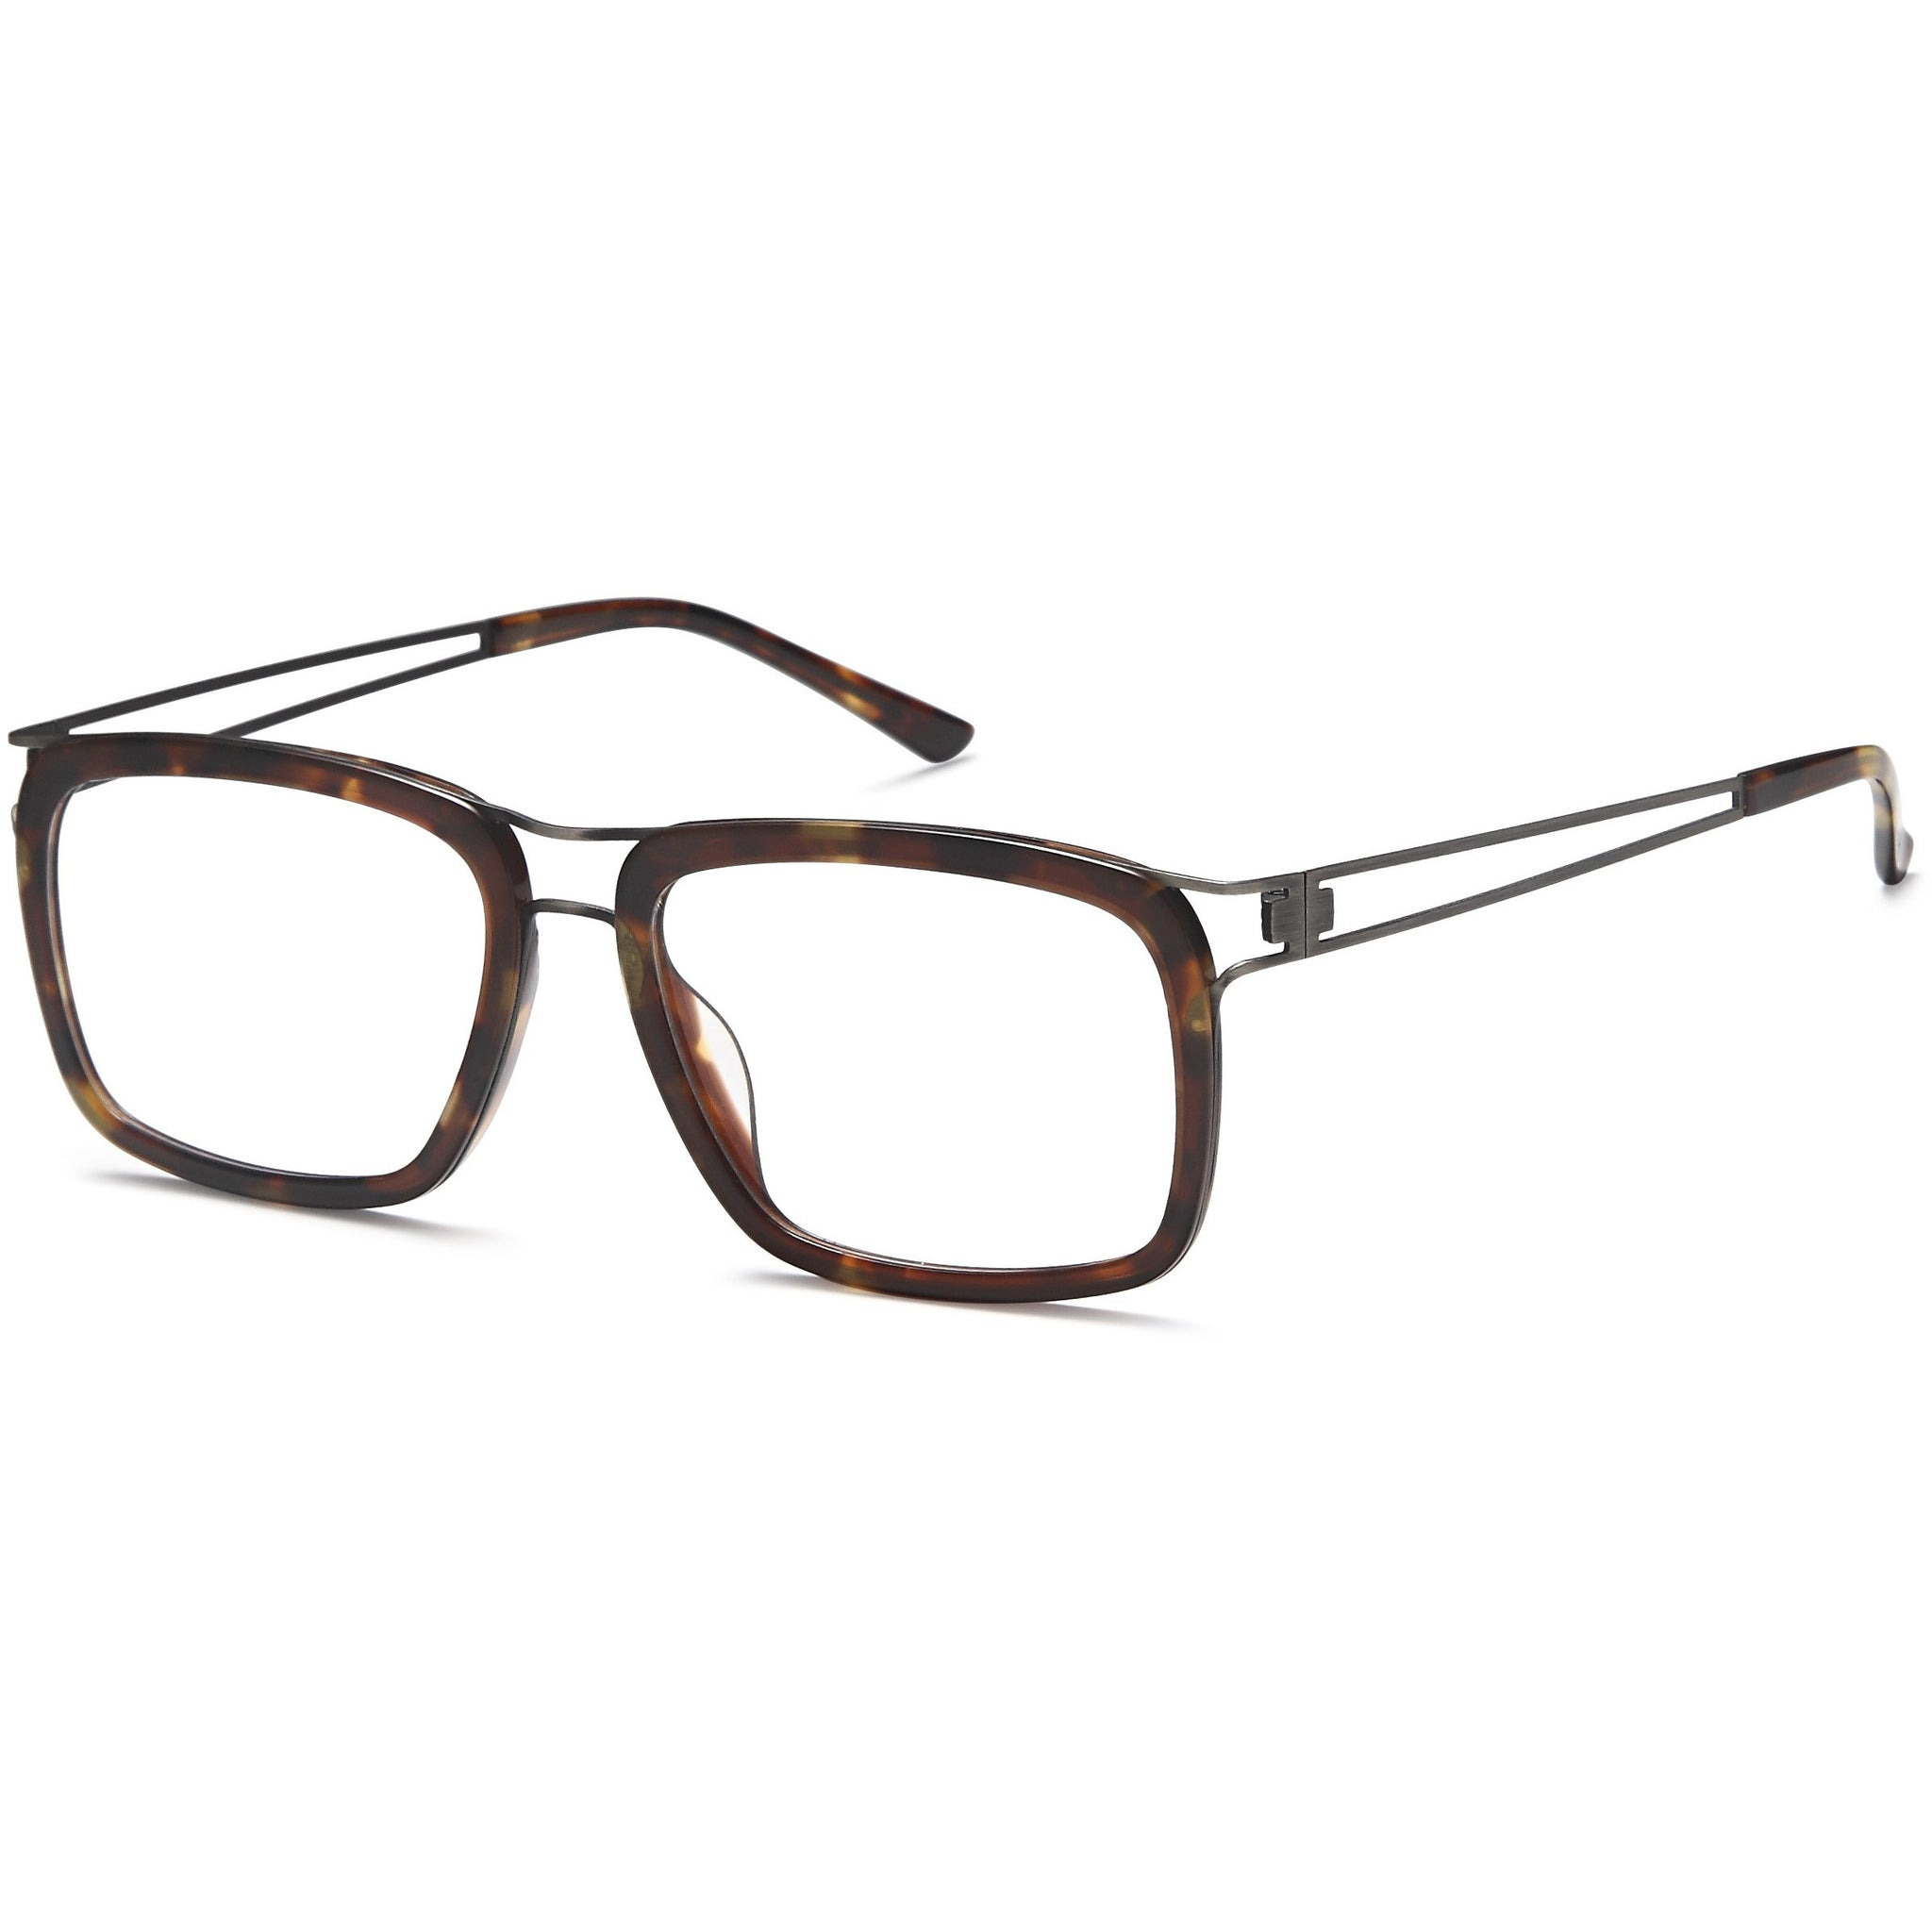 Sophistics Prescription Glasses ART 419 Frame